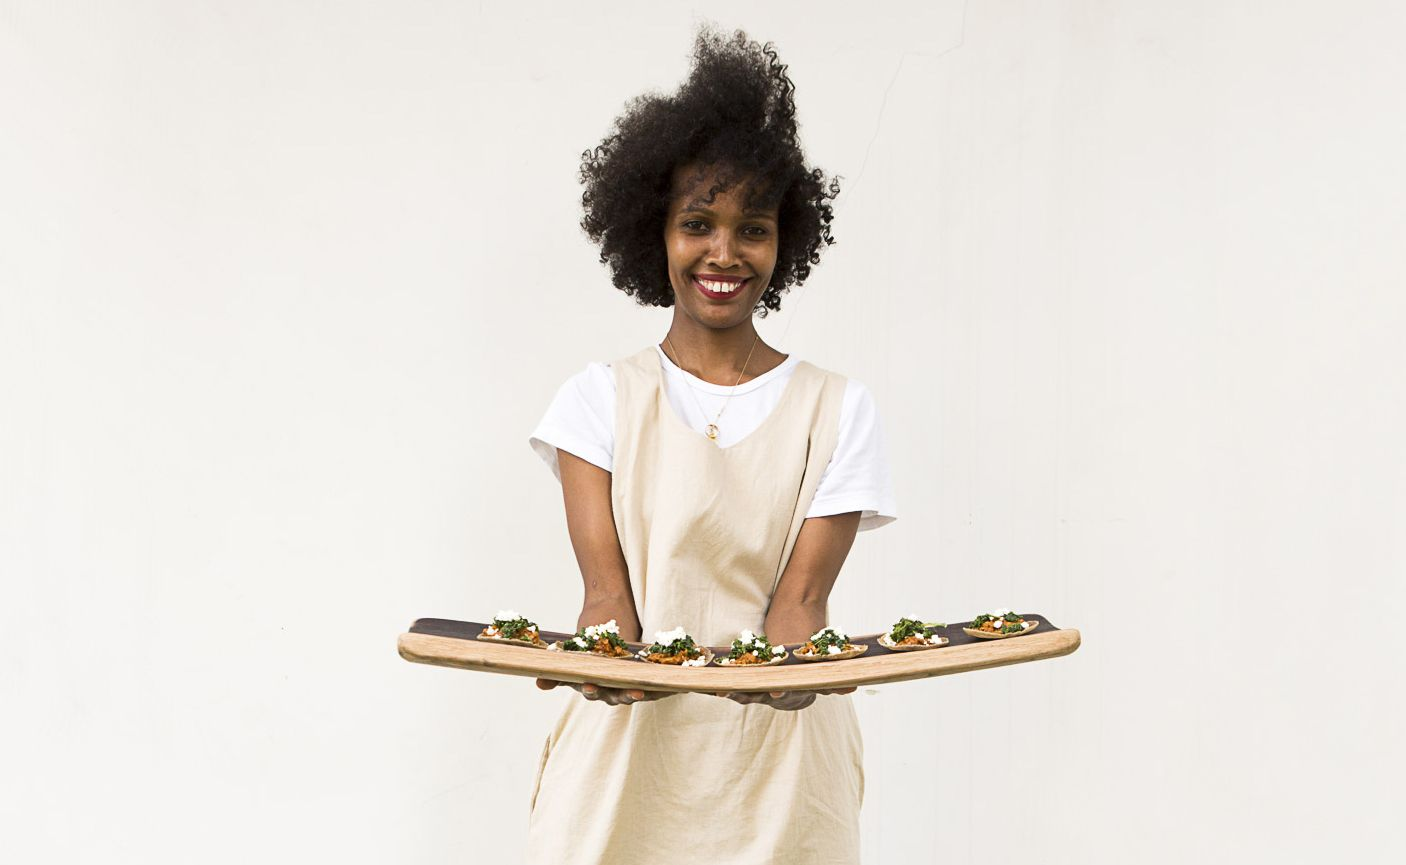 #TatlerTable: Helina Tesega of Eat Ethio